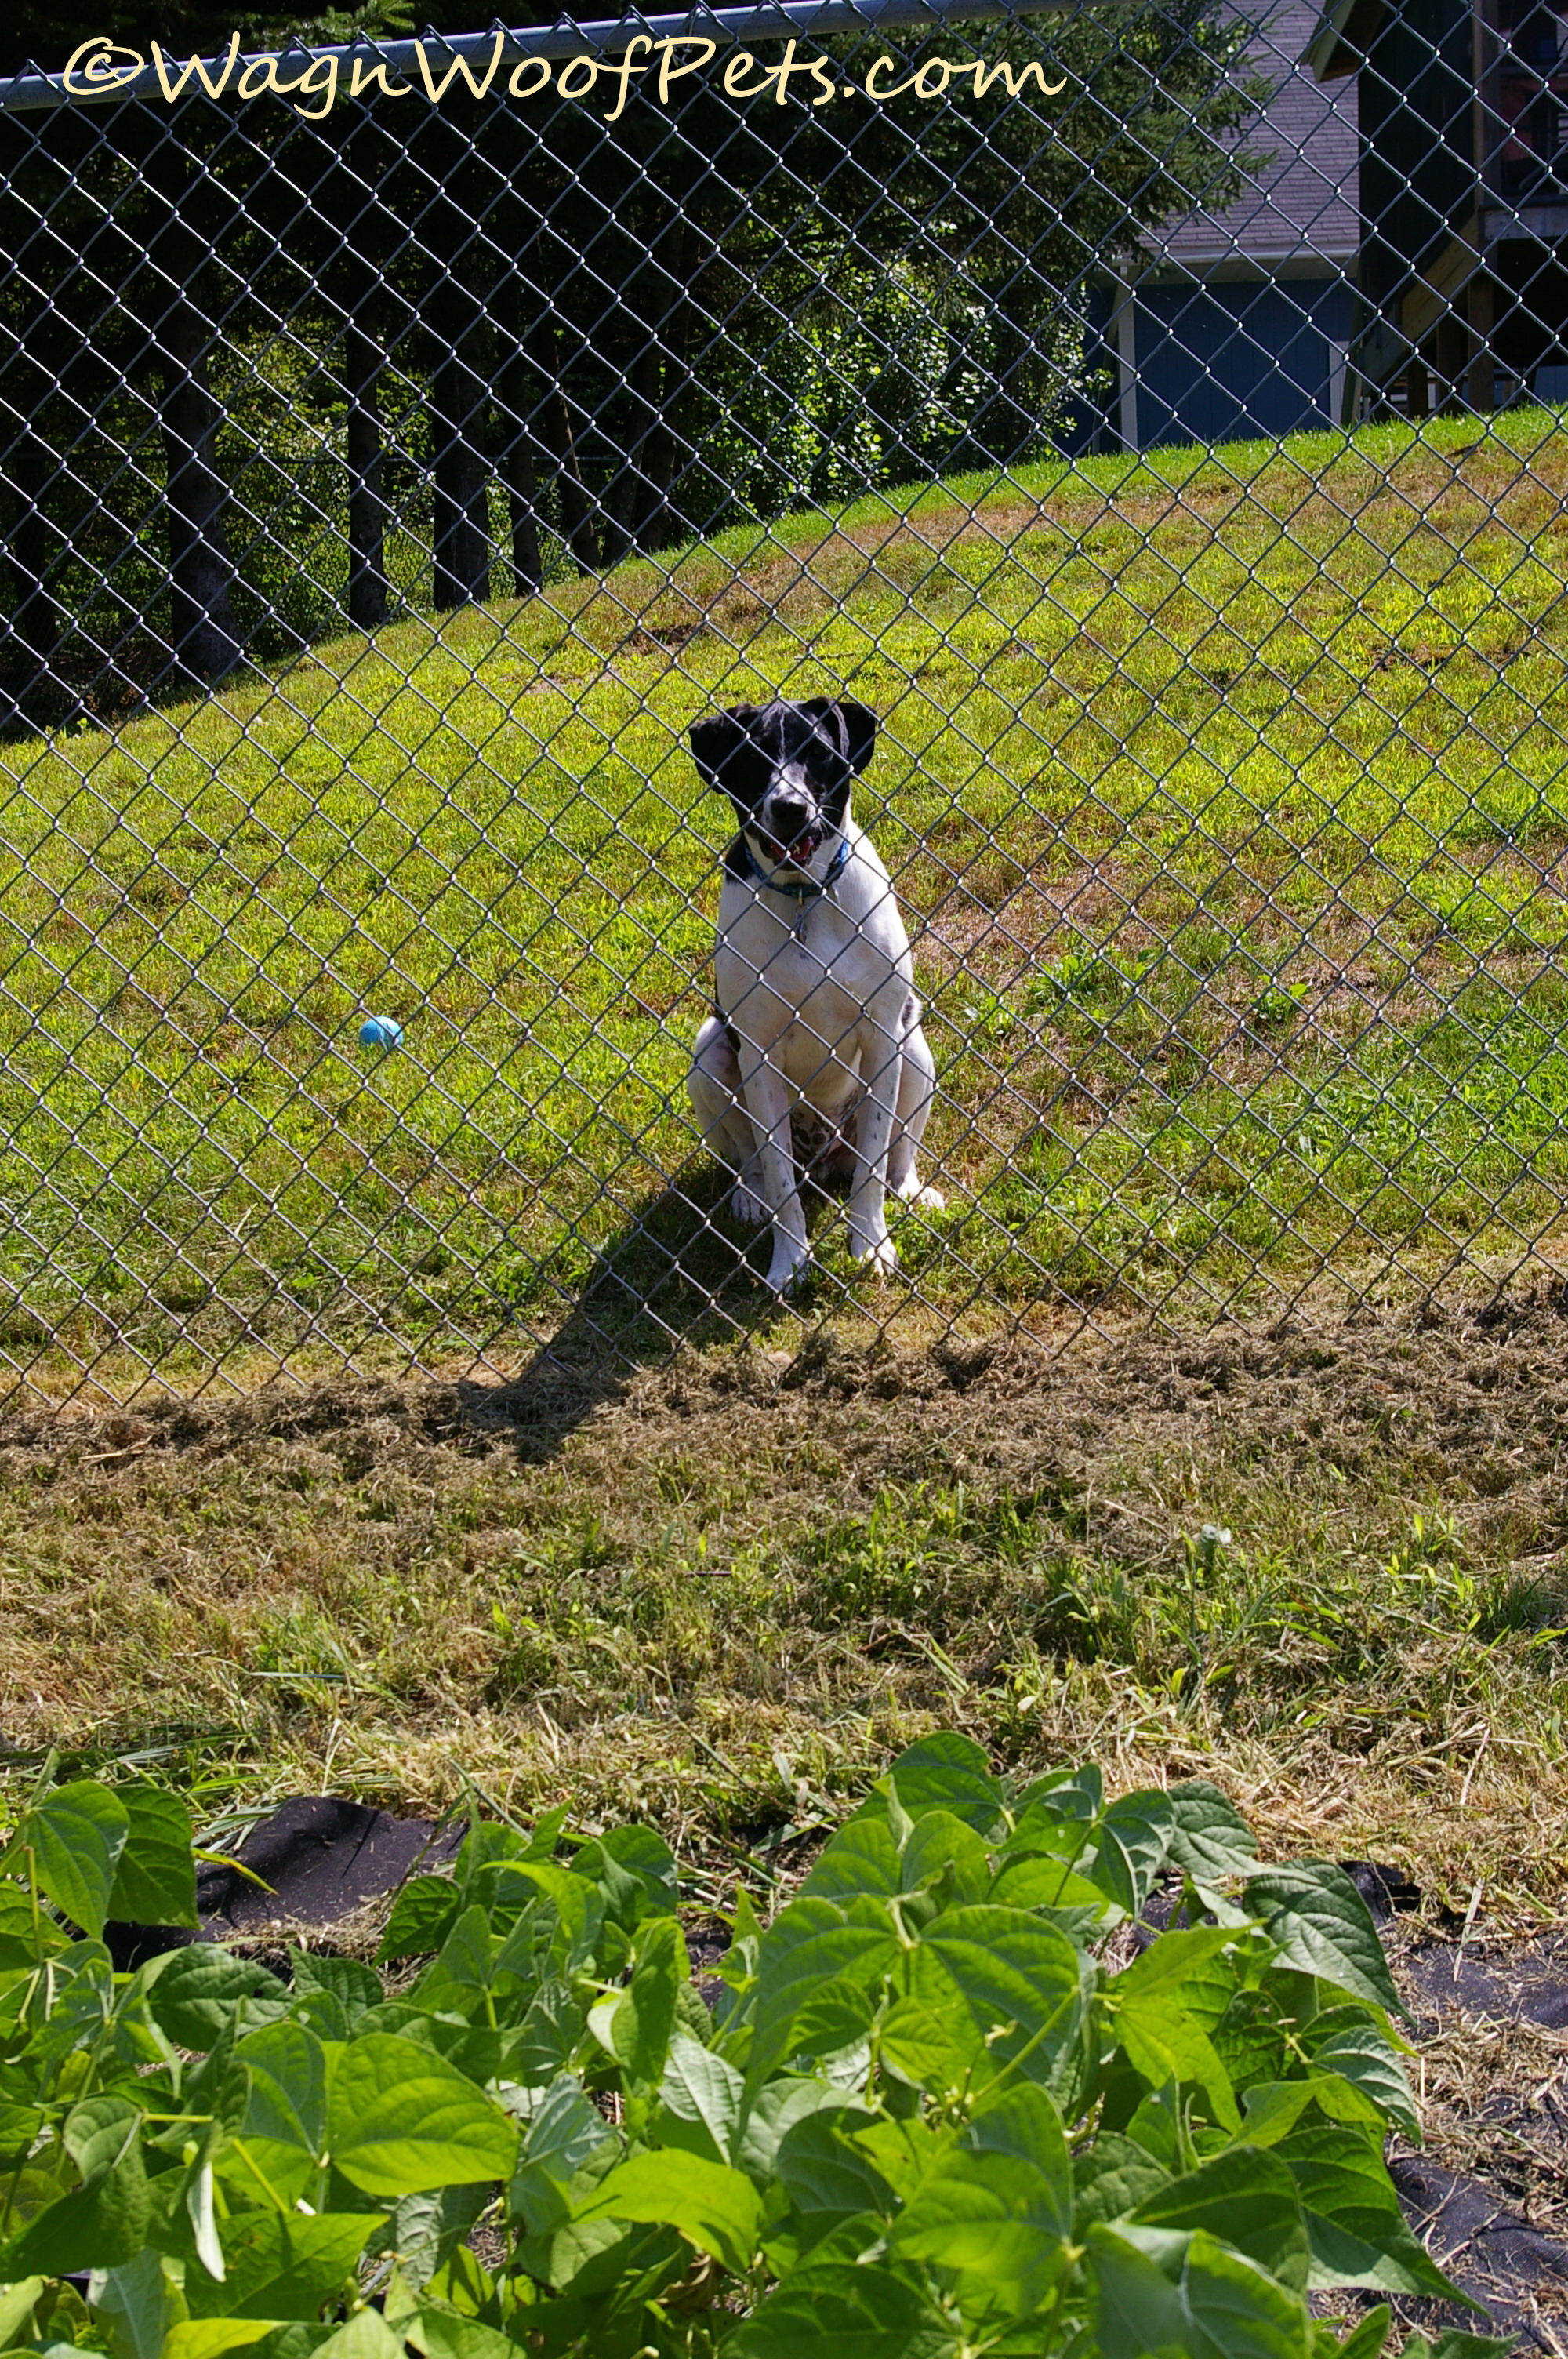 Beans - waiting at fence